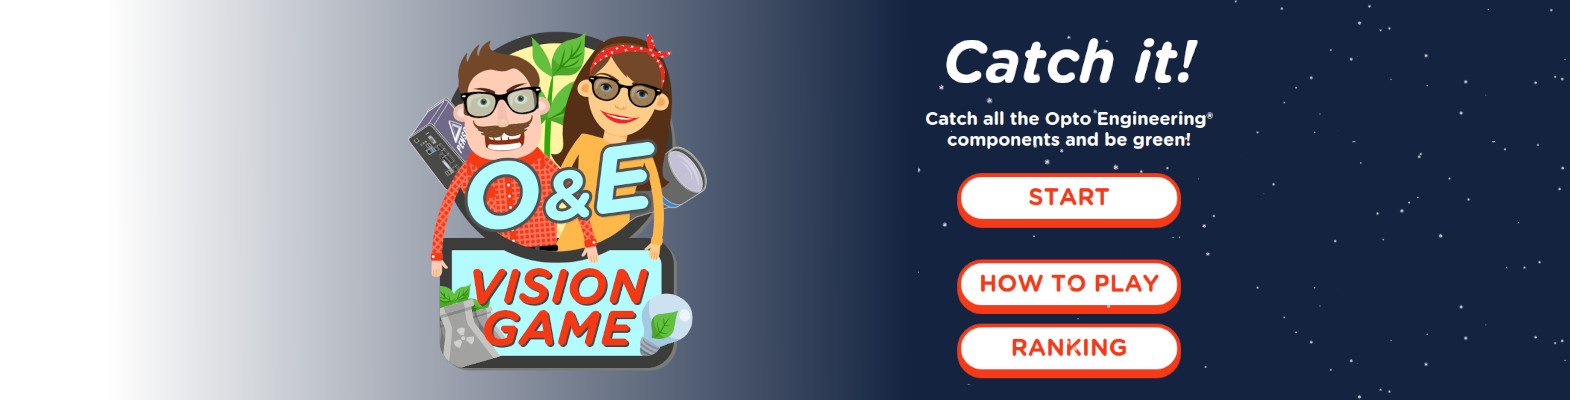 Are you ready to play theO&E vision game?Have fun and enjoy a short break